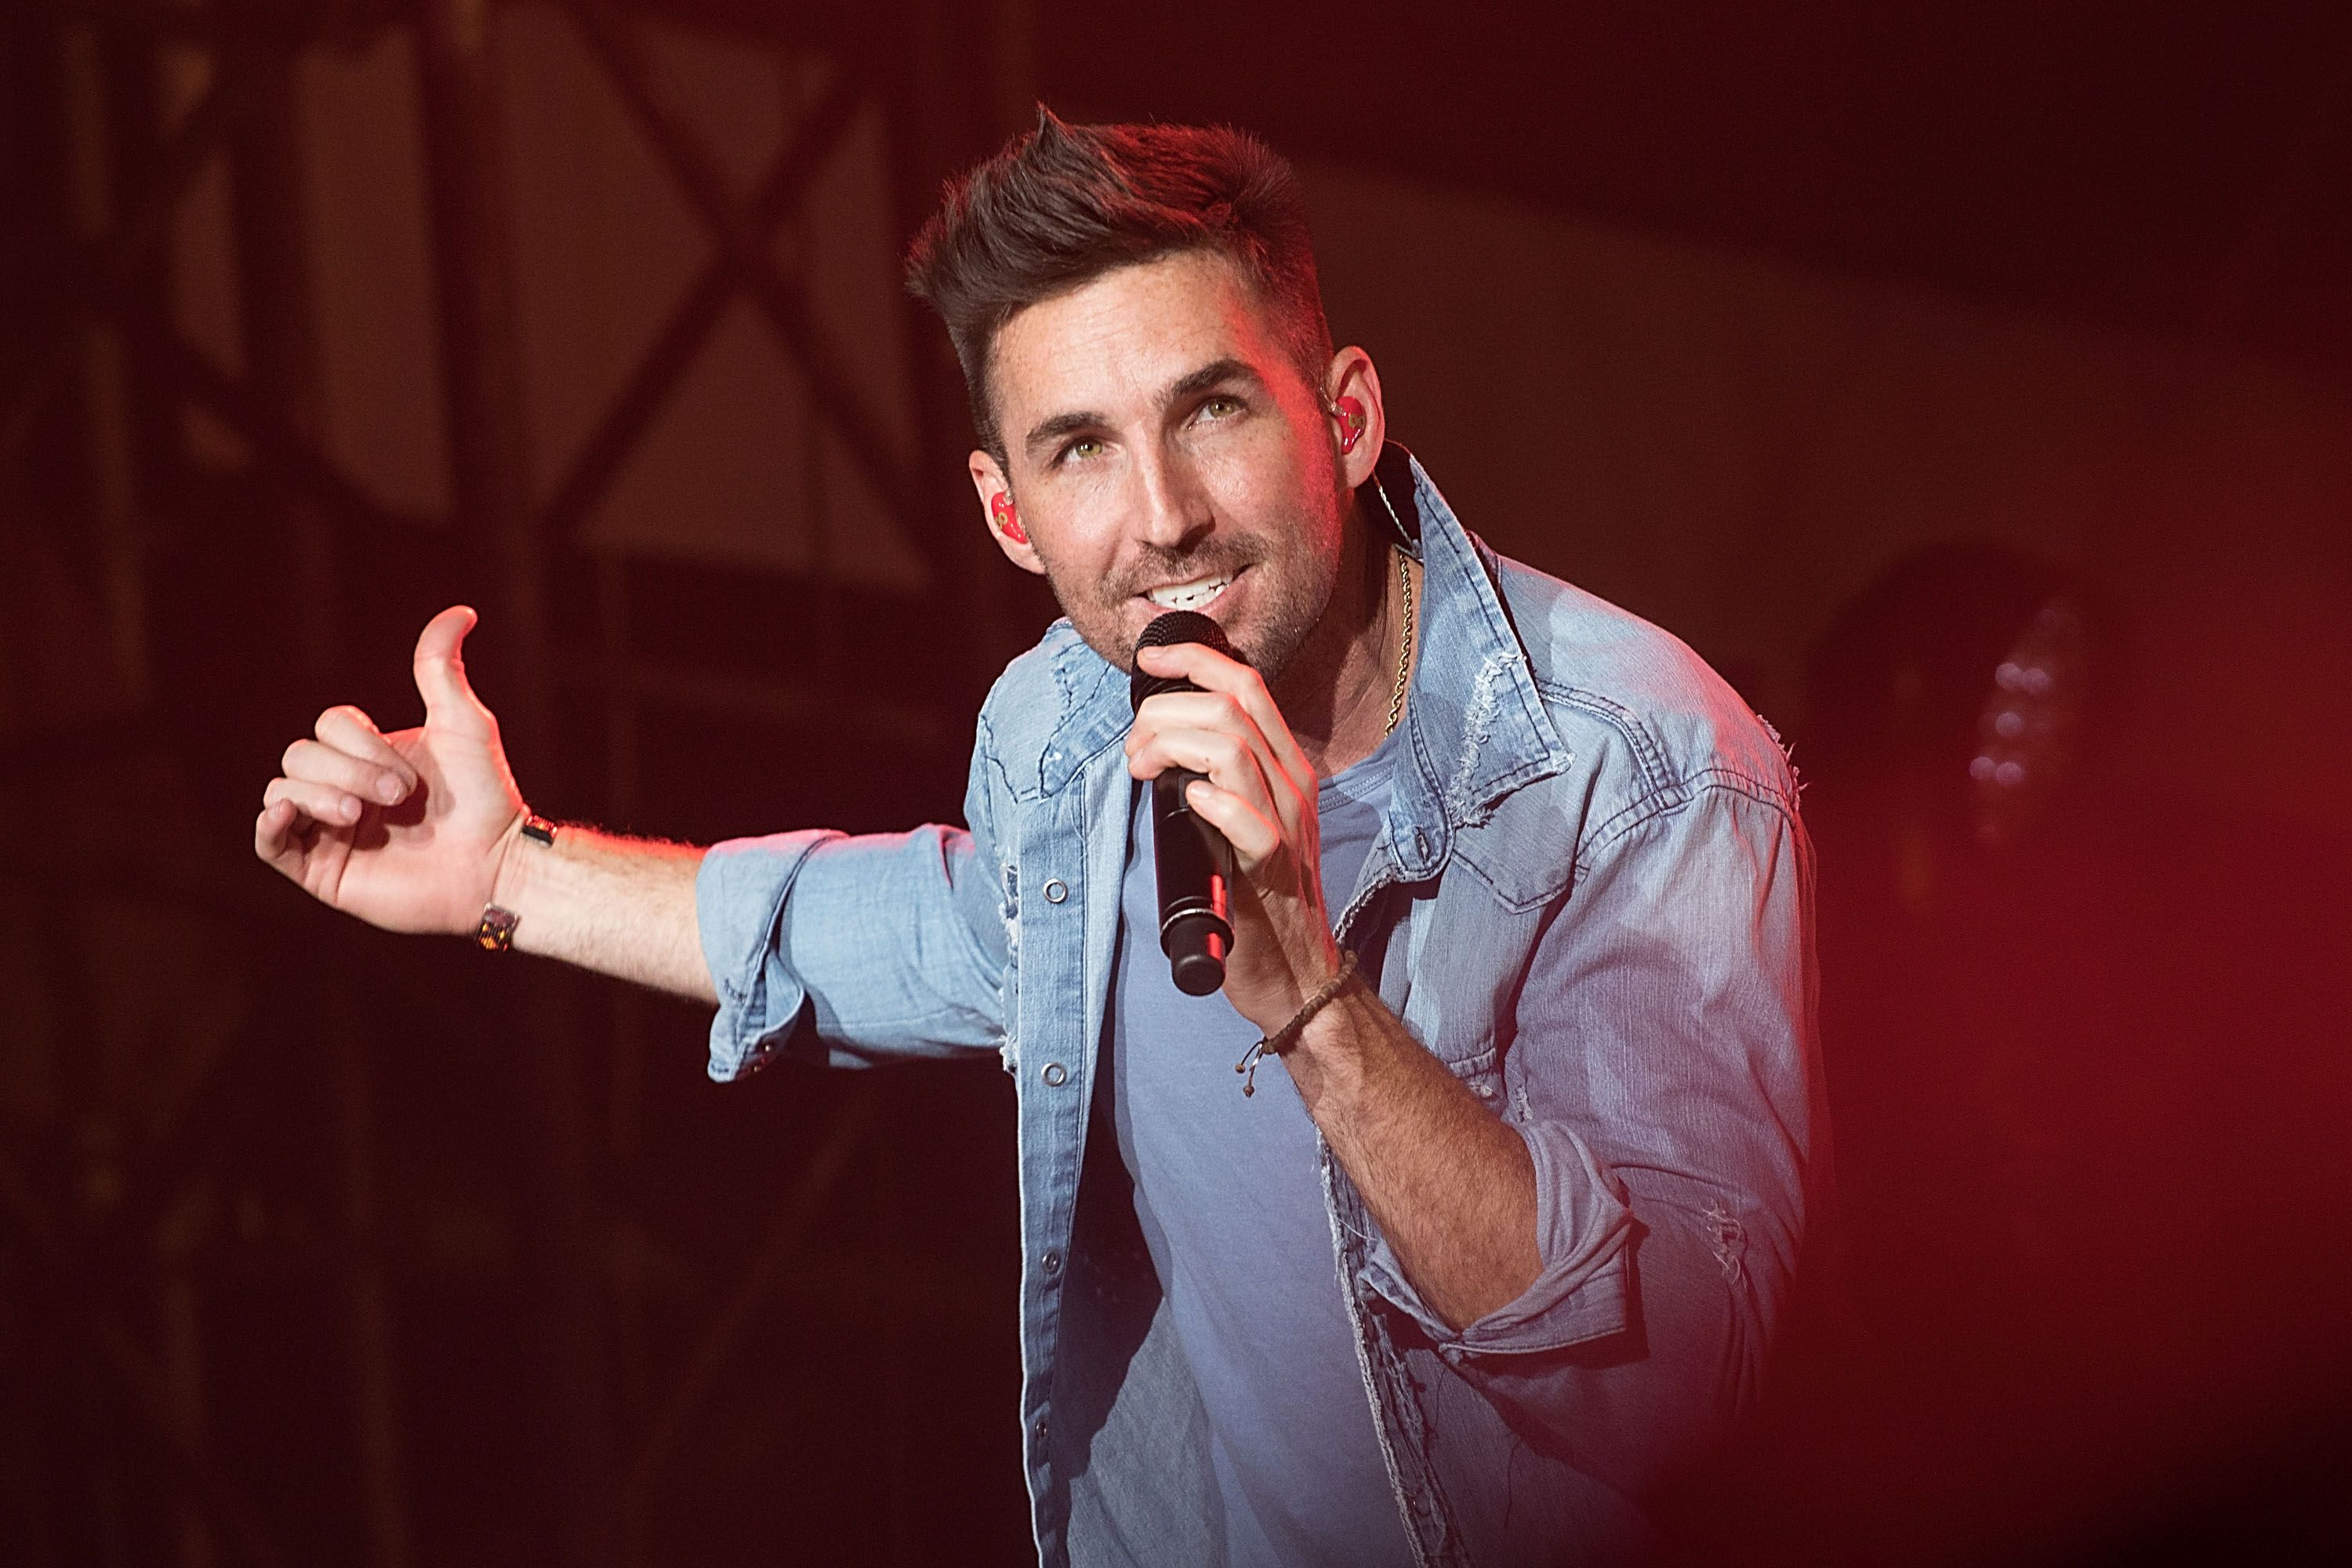 Biography of Country Music Star Jake Owen